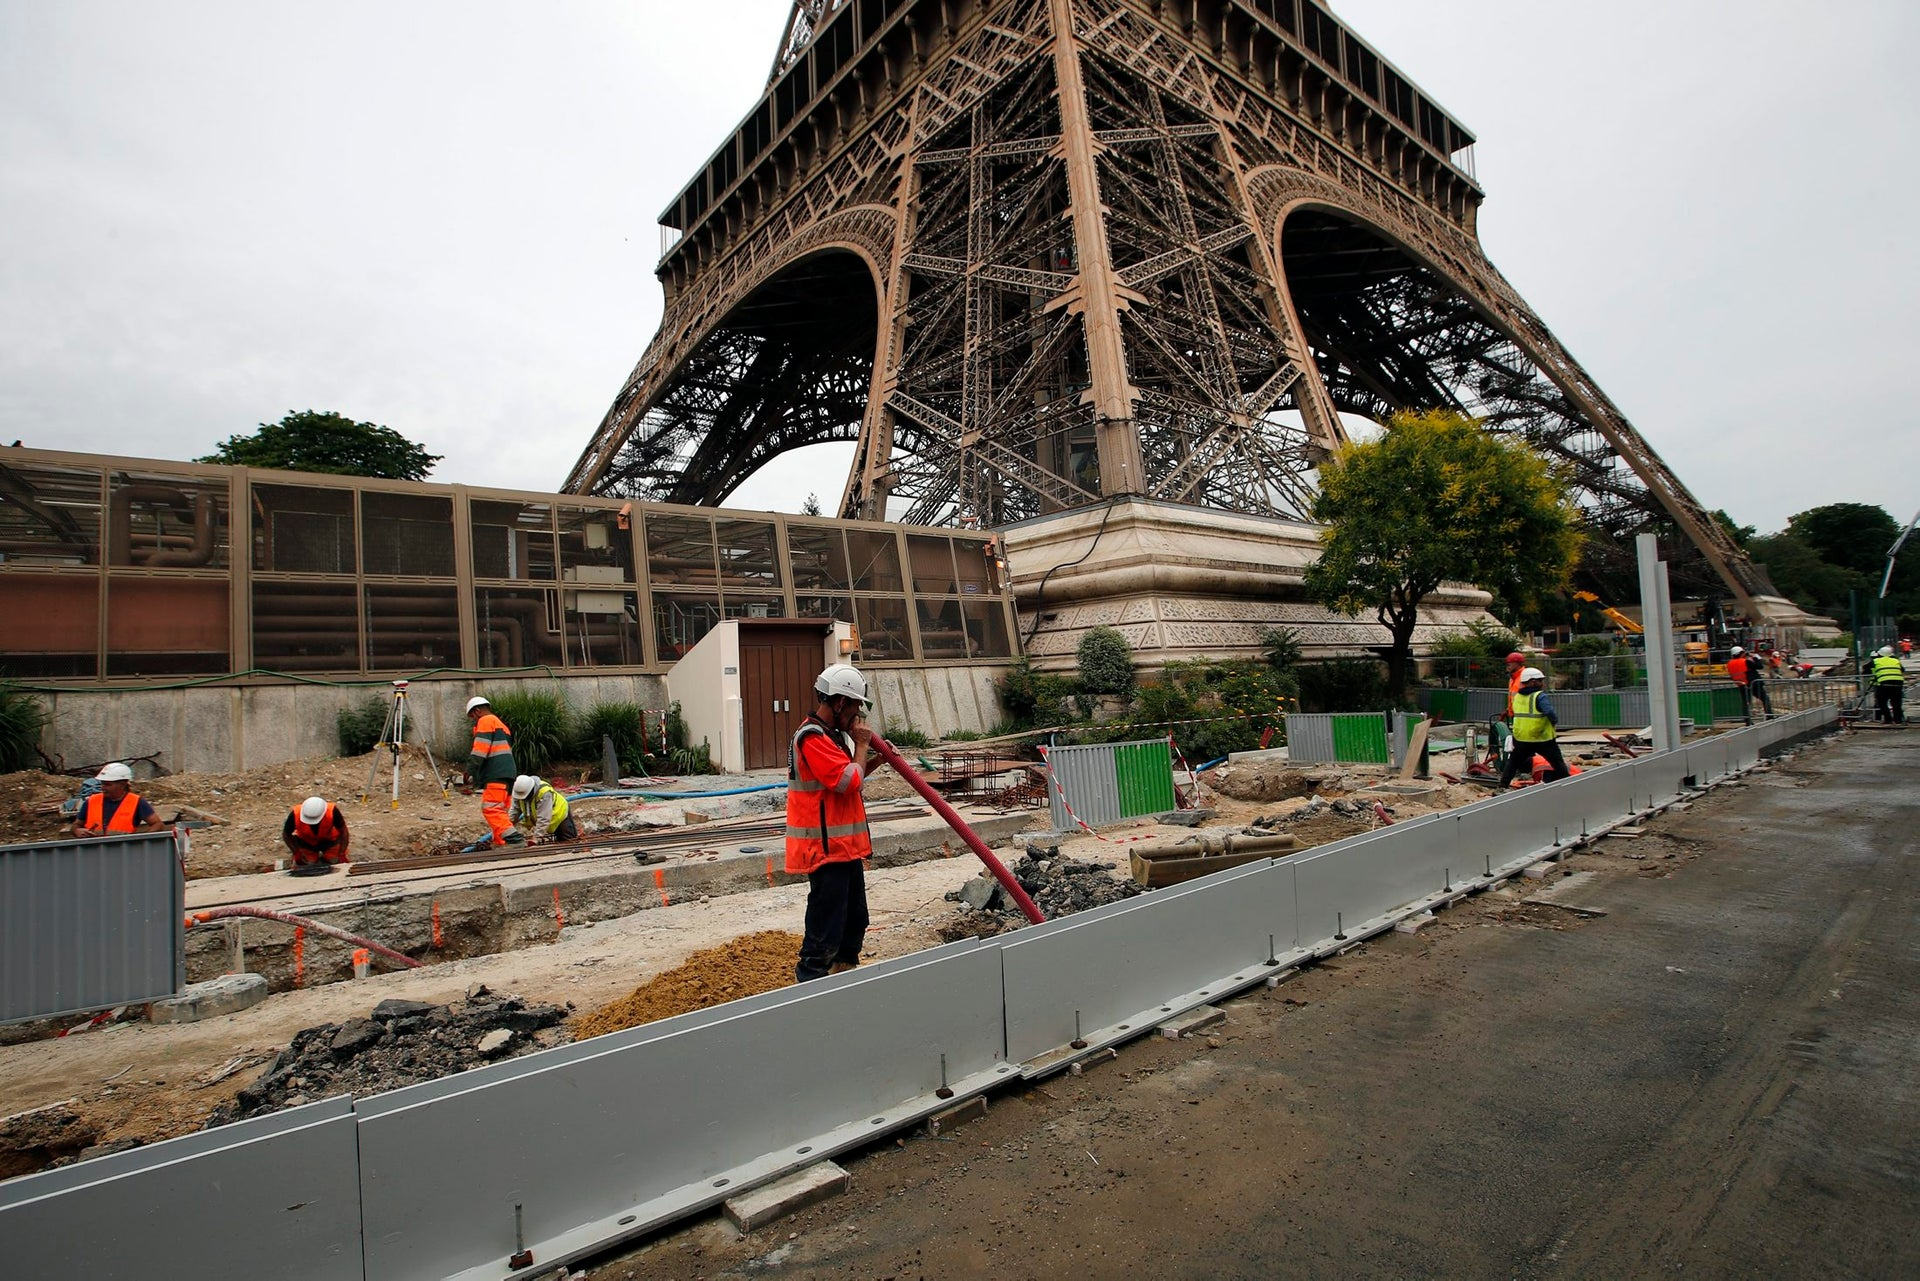 Construction workers build a new security bulletproof glass barrier under construction around the Eiffel Tower in Paris, France, Thursday, June 14, 2018. Paris authorities have started replacing the metal security fencing around the Eiffel Tower with a more visually appealing glass wall. The company operating the monument said see-through panels are being set up instead of the fences at the north and south of the famed monument that were installed for the Euro 2016 soccer event. Each panel is 3 meters high, over 6 centimeters thick and weighs 1.5 ton.